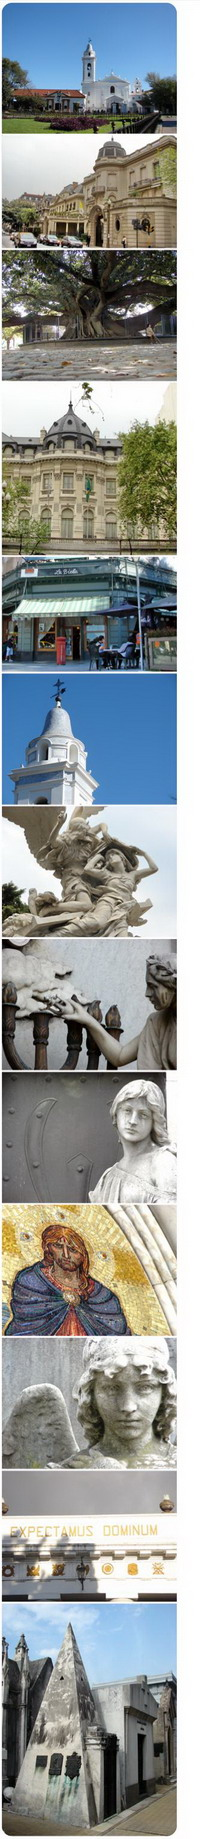 private-tour-guide-buenos-aires-recoleta-and-recoleta-cemetery